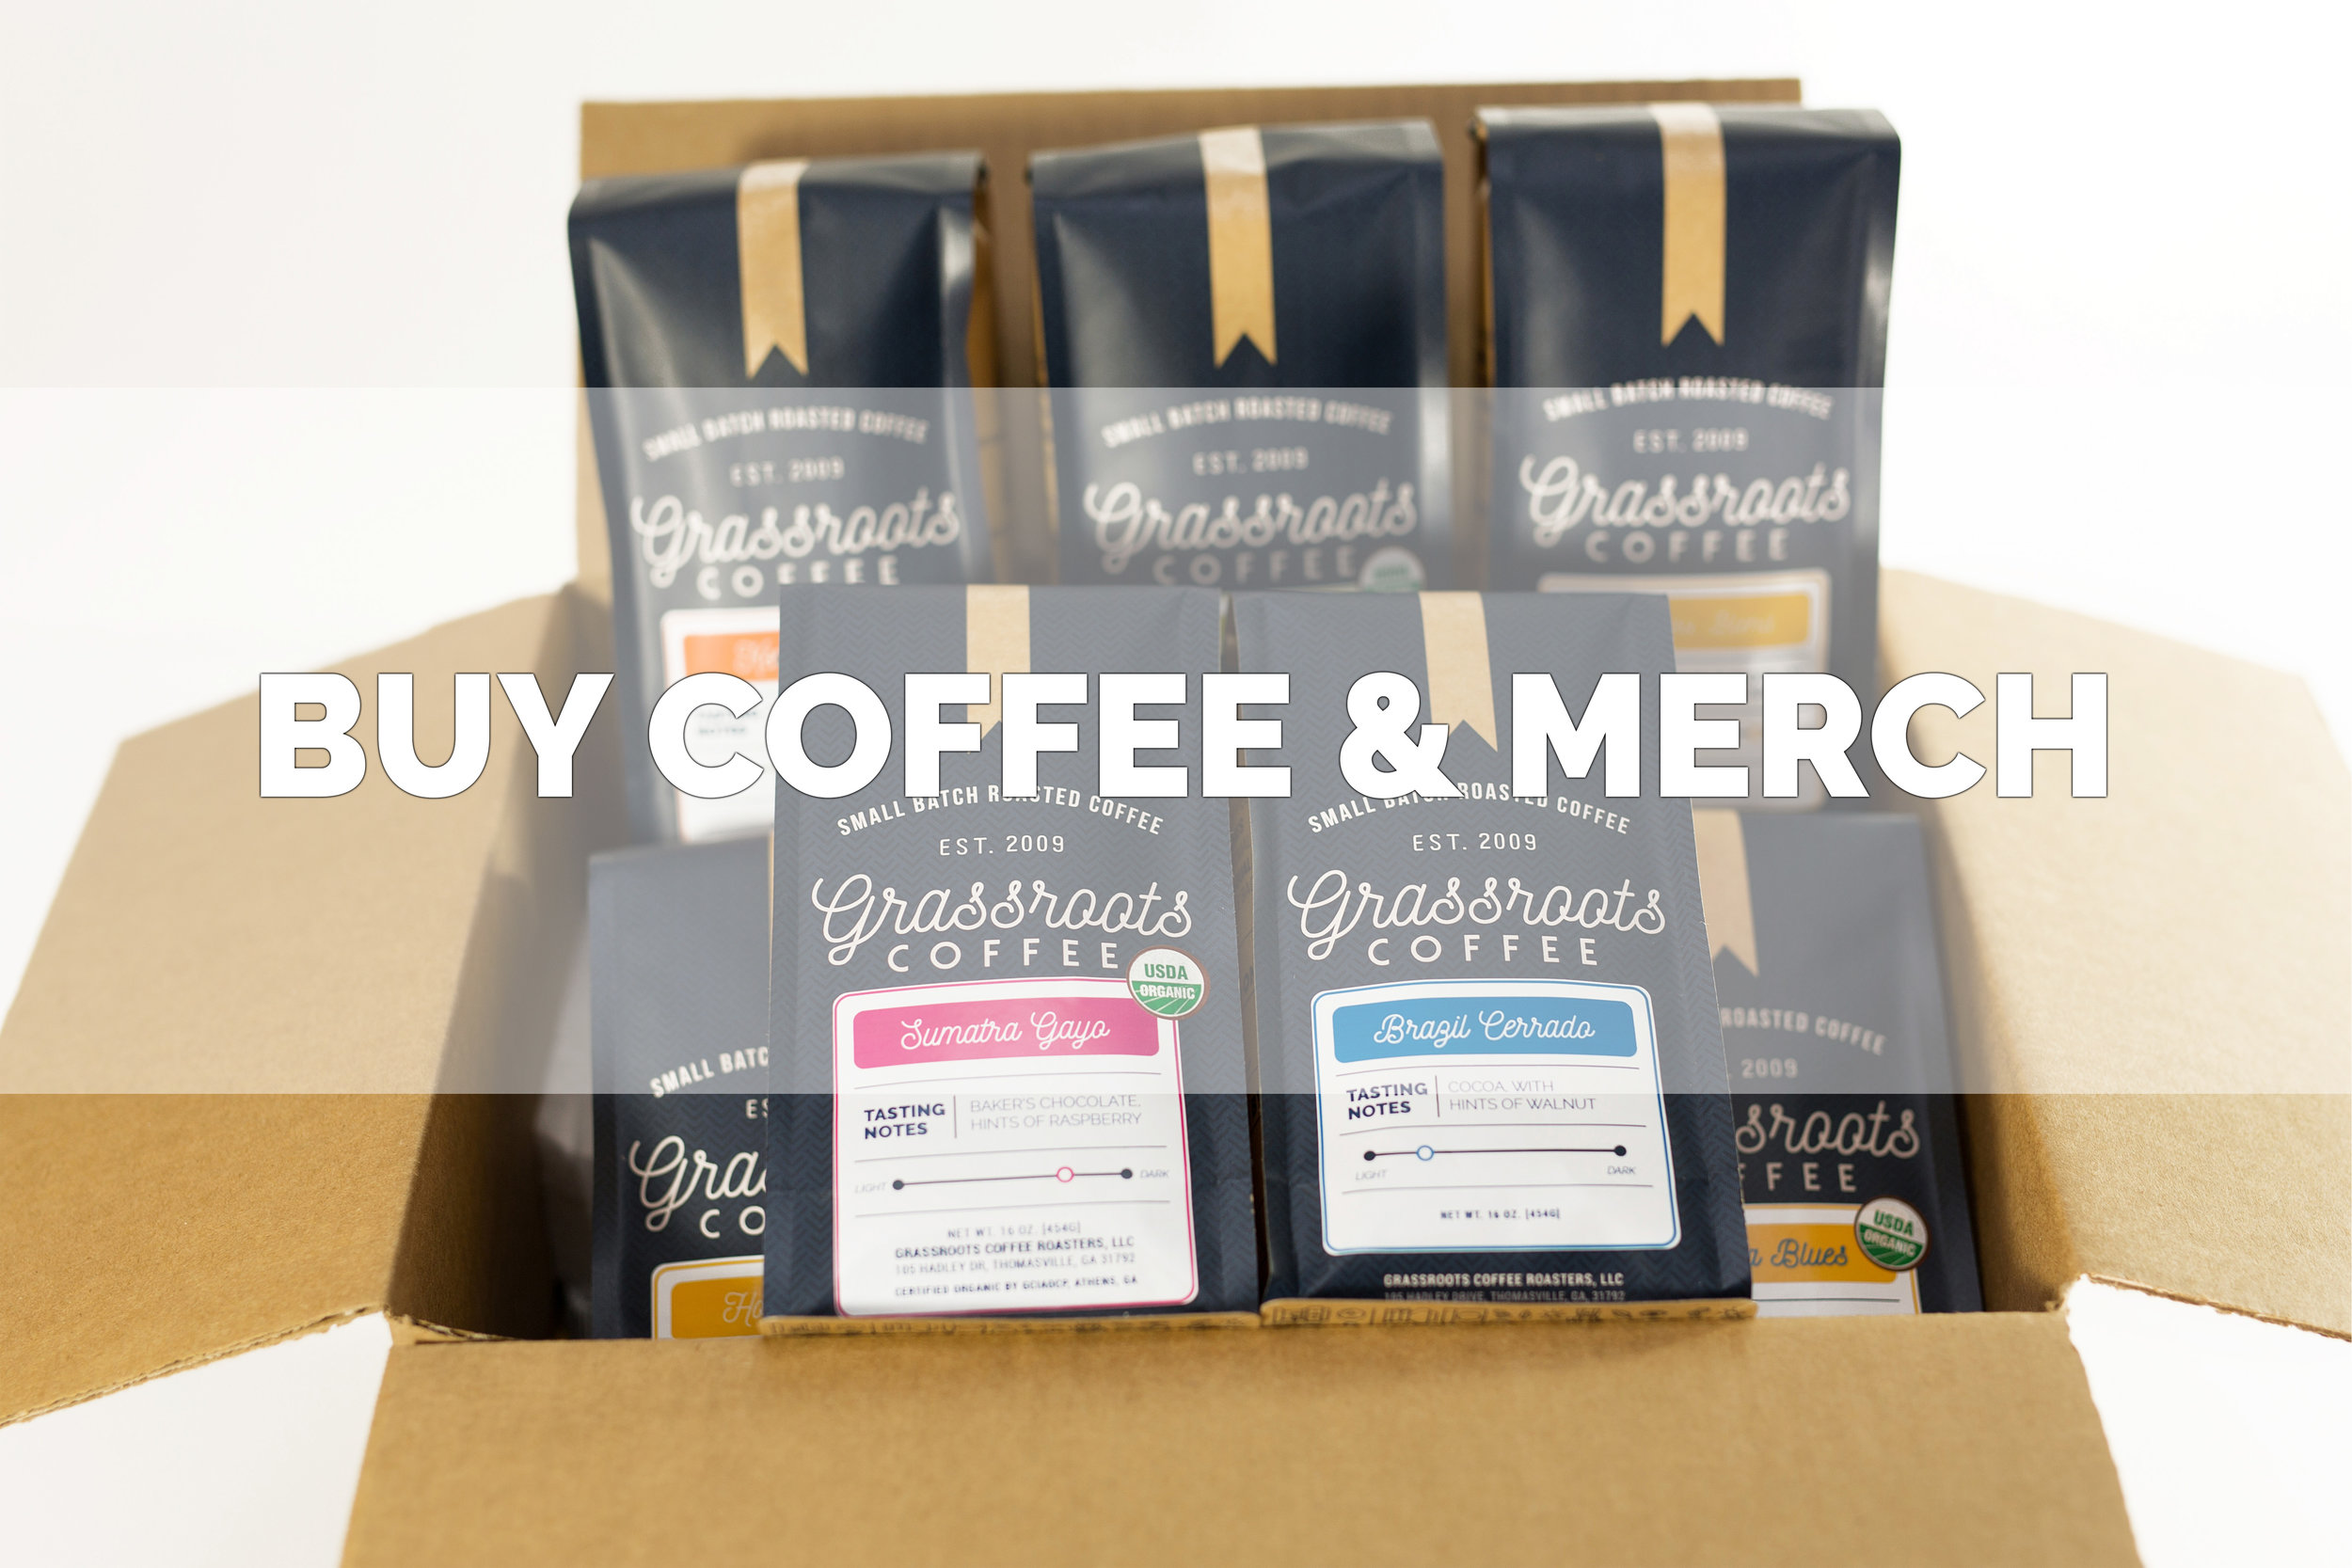 Buy Grassroots Coffee bags and merchandise.